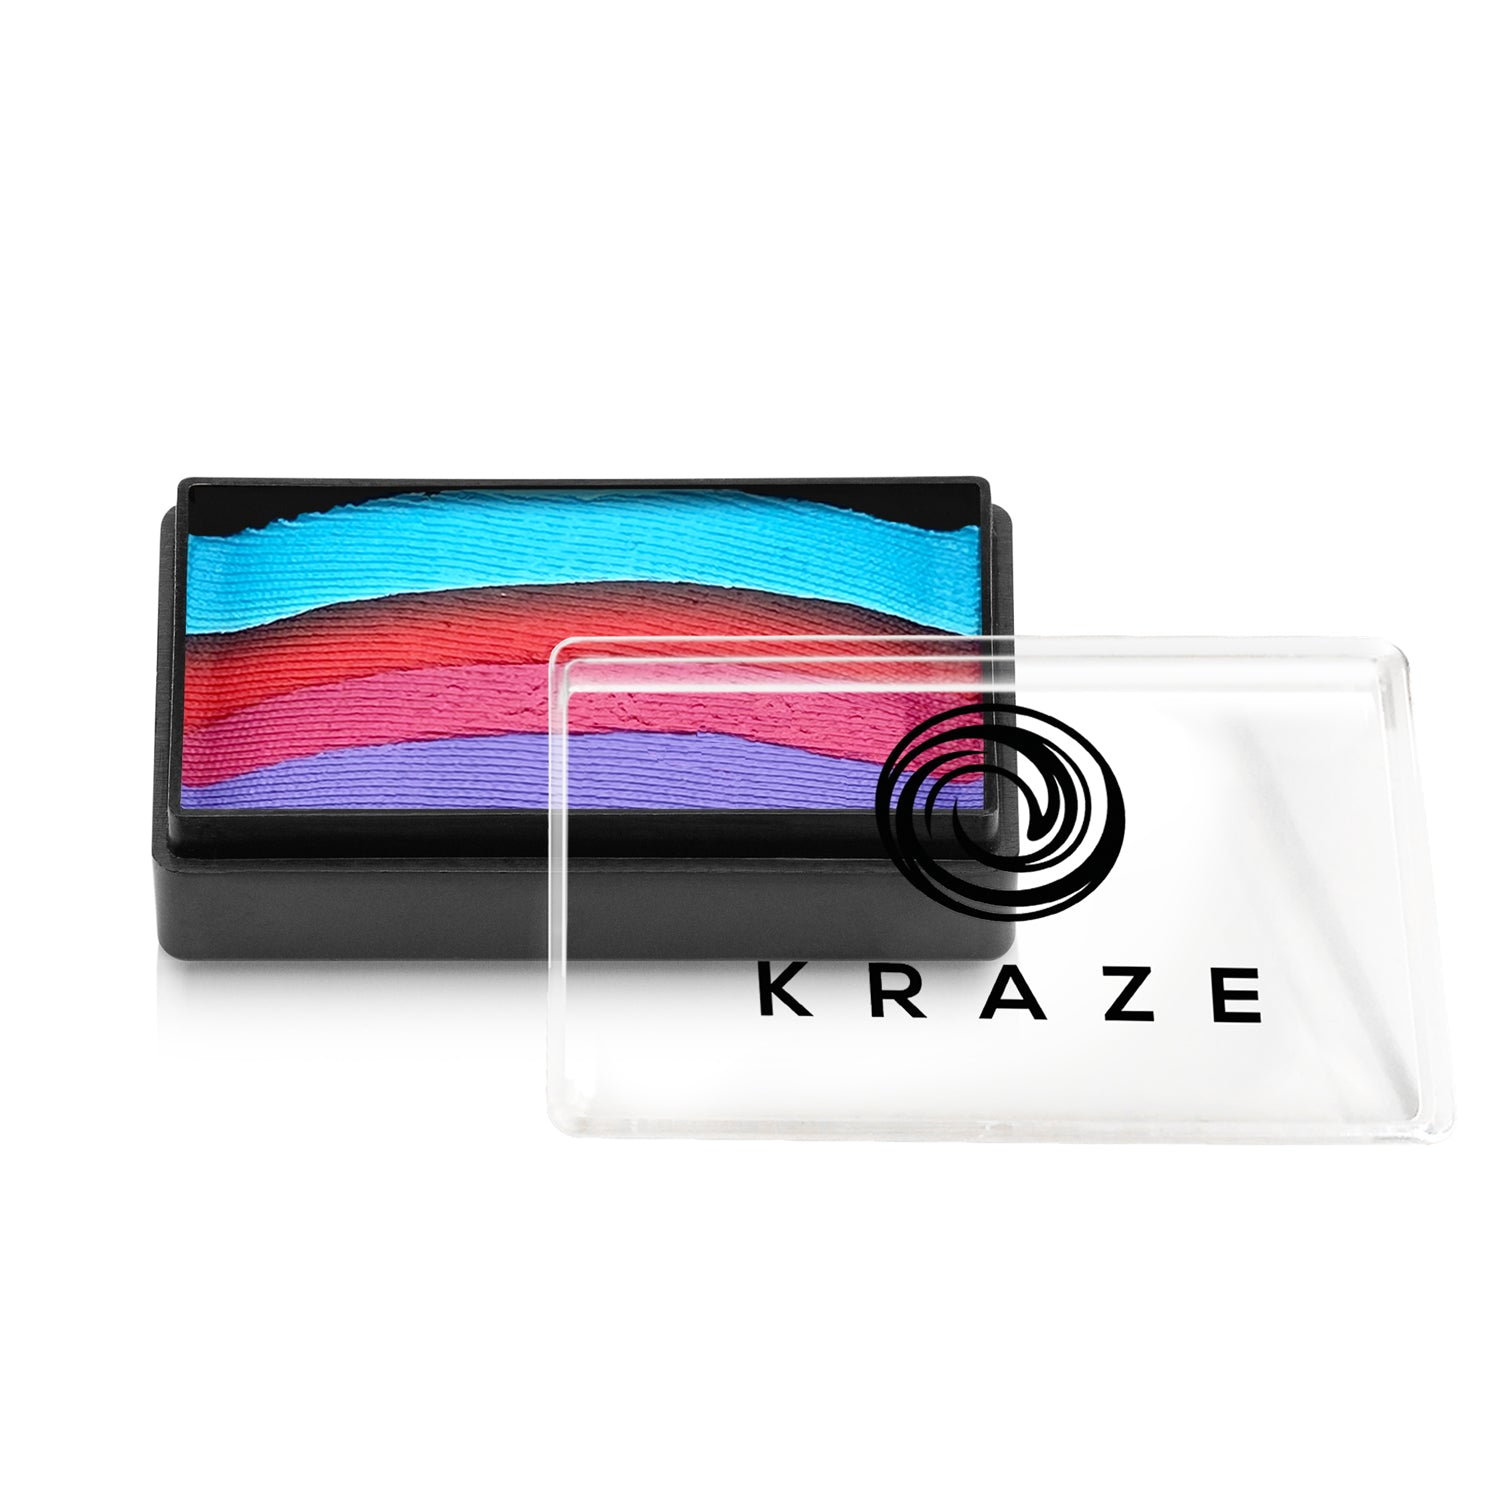 Kraze FX Domed One Stroke Cake - Fancy Girl (25 gm)